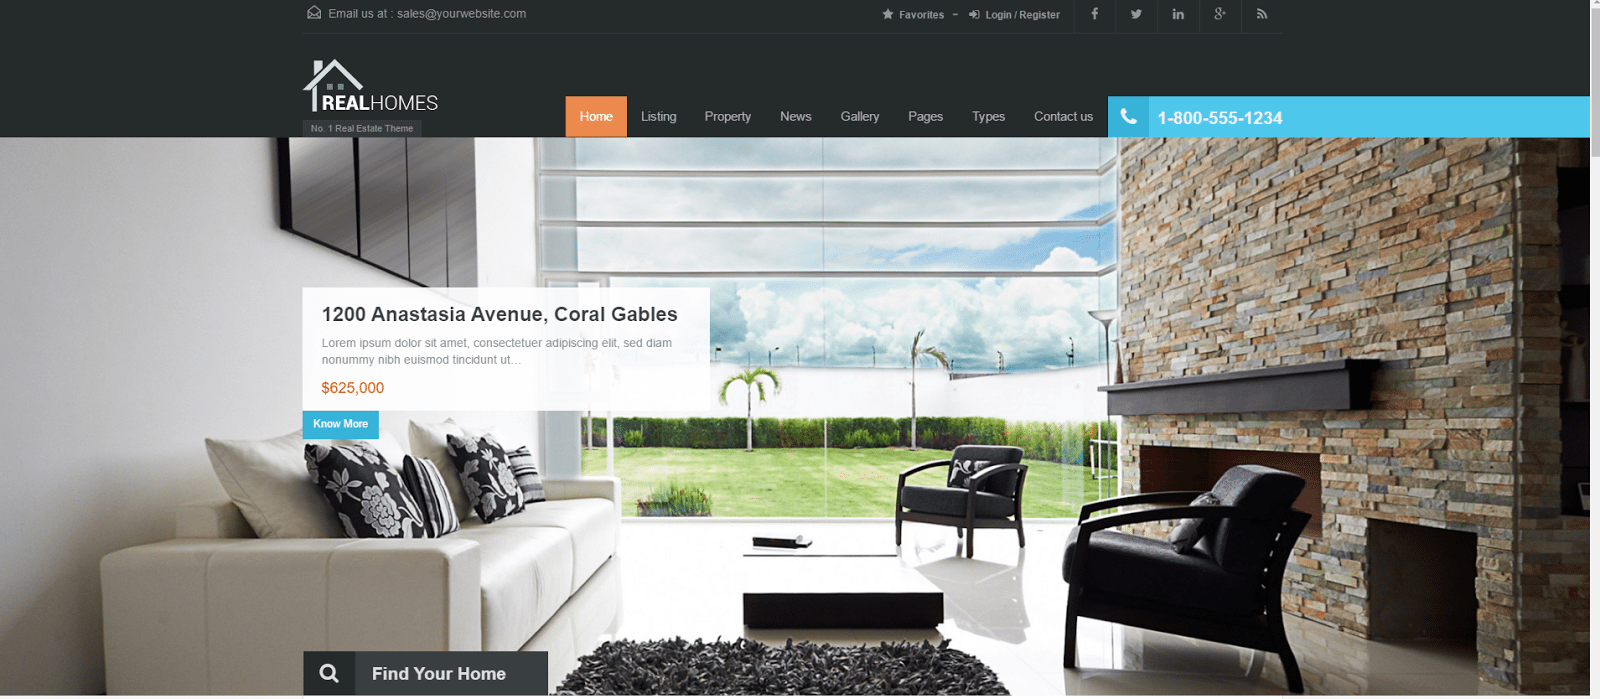 Real Homes - real estate website templates